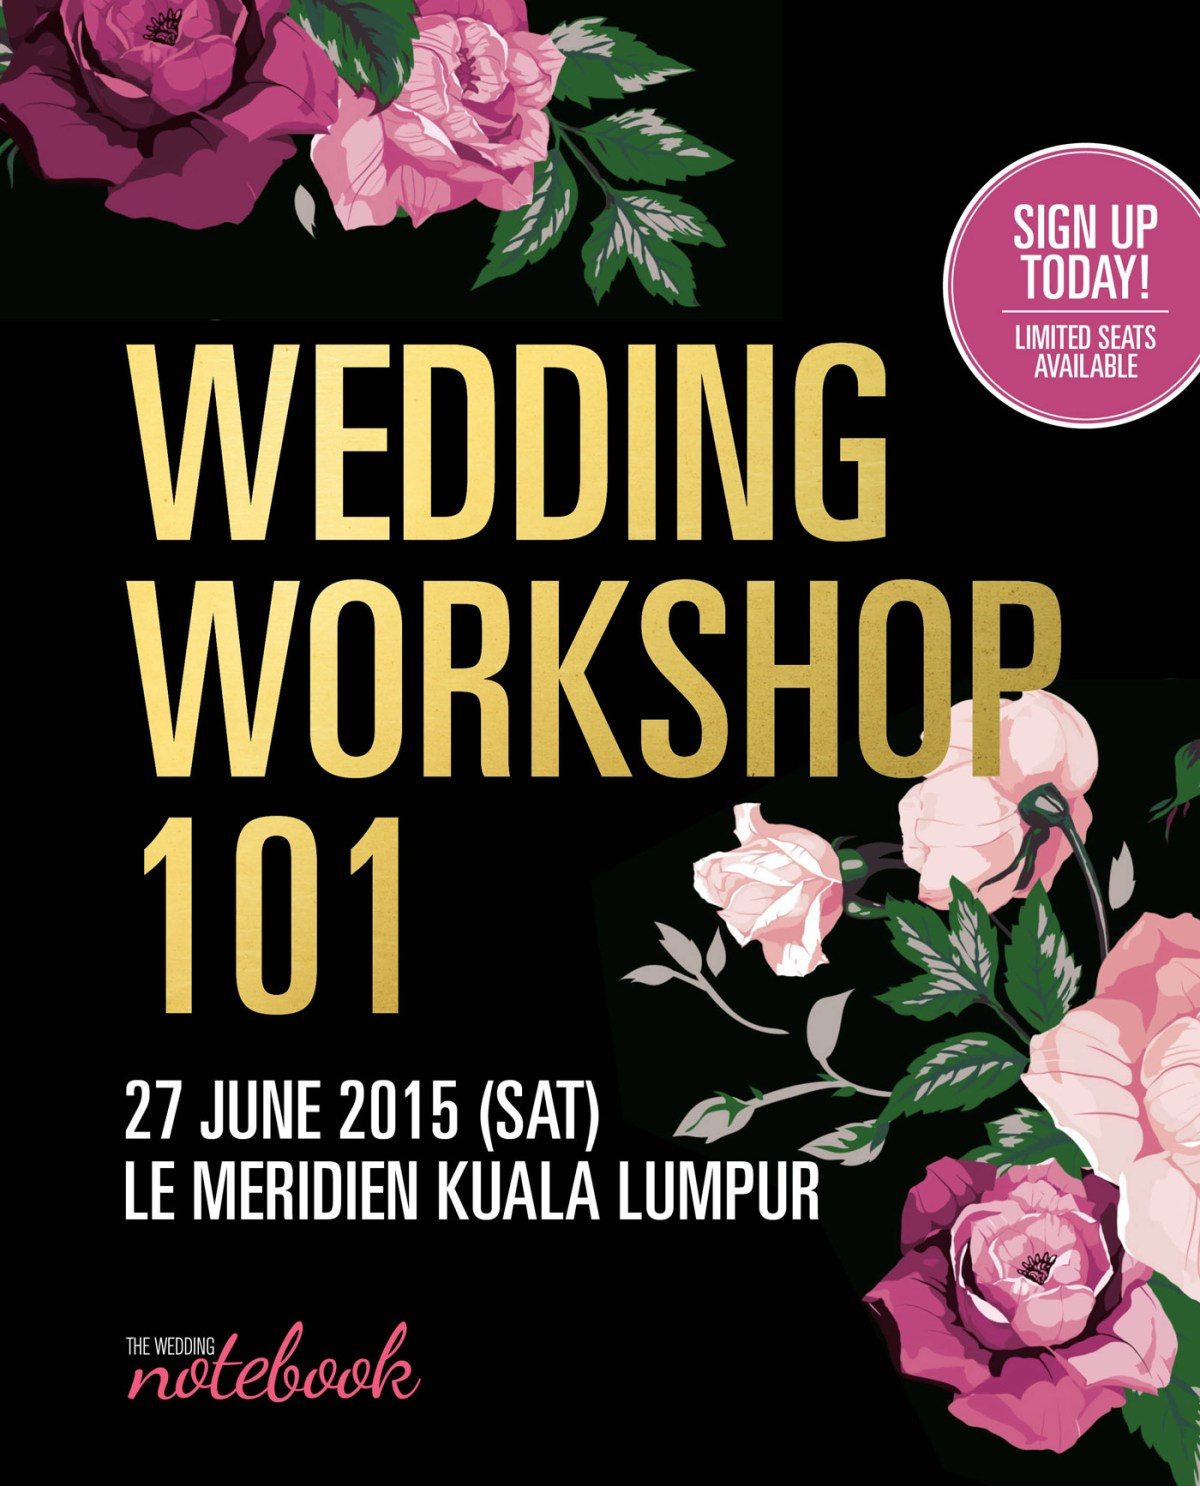 the-wedding-notebook-wedding-workshop